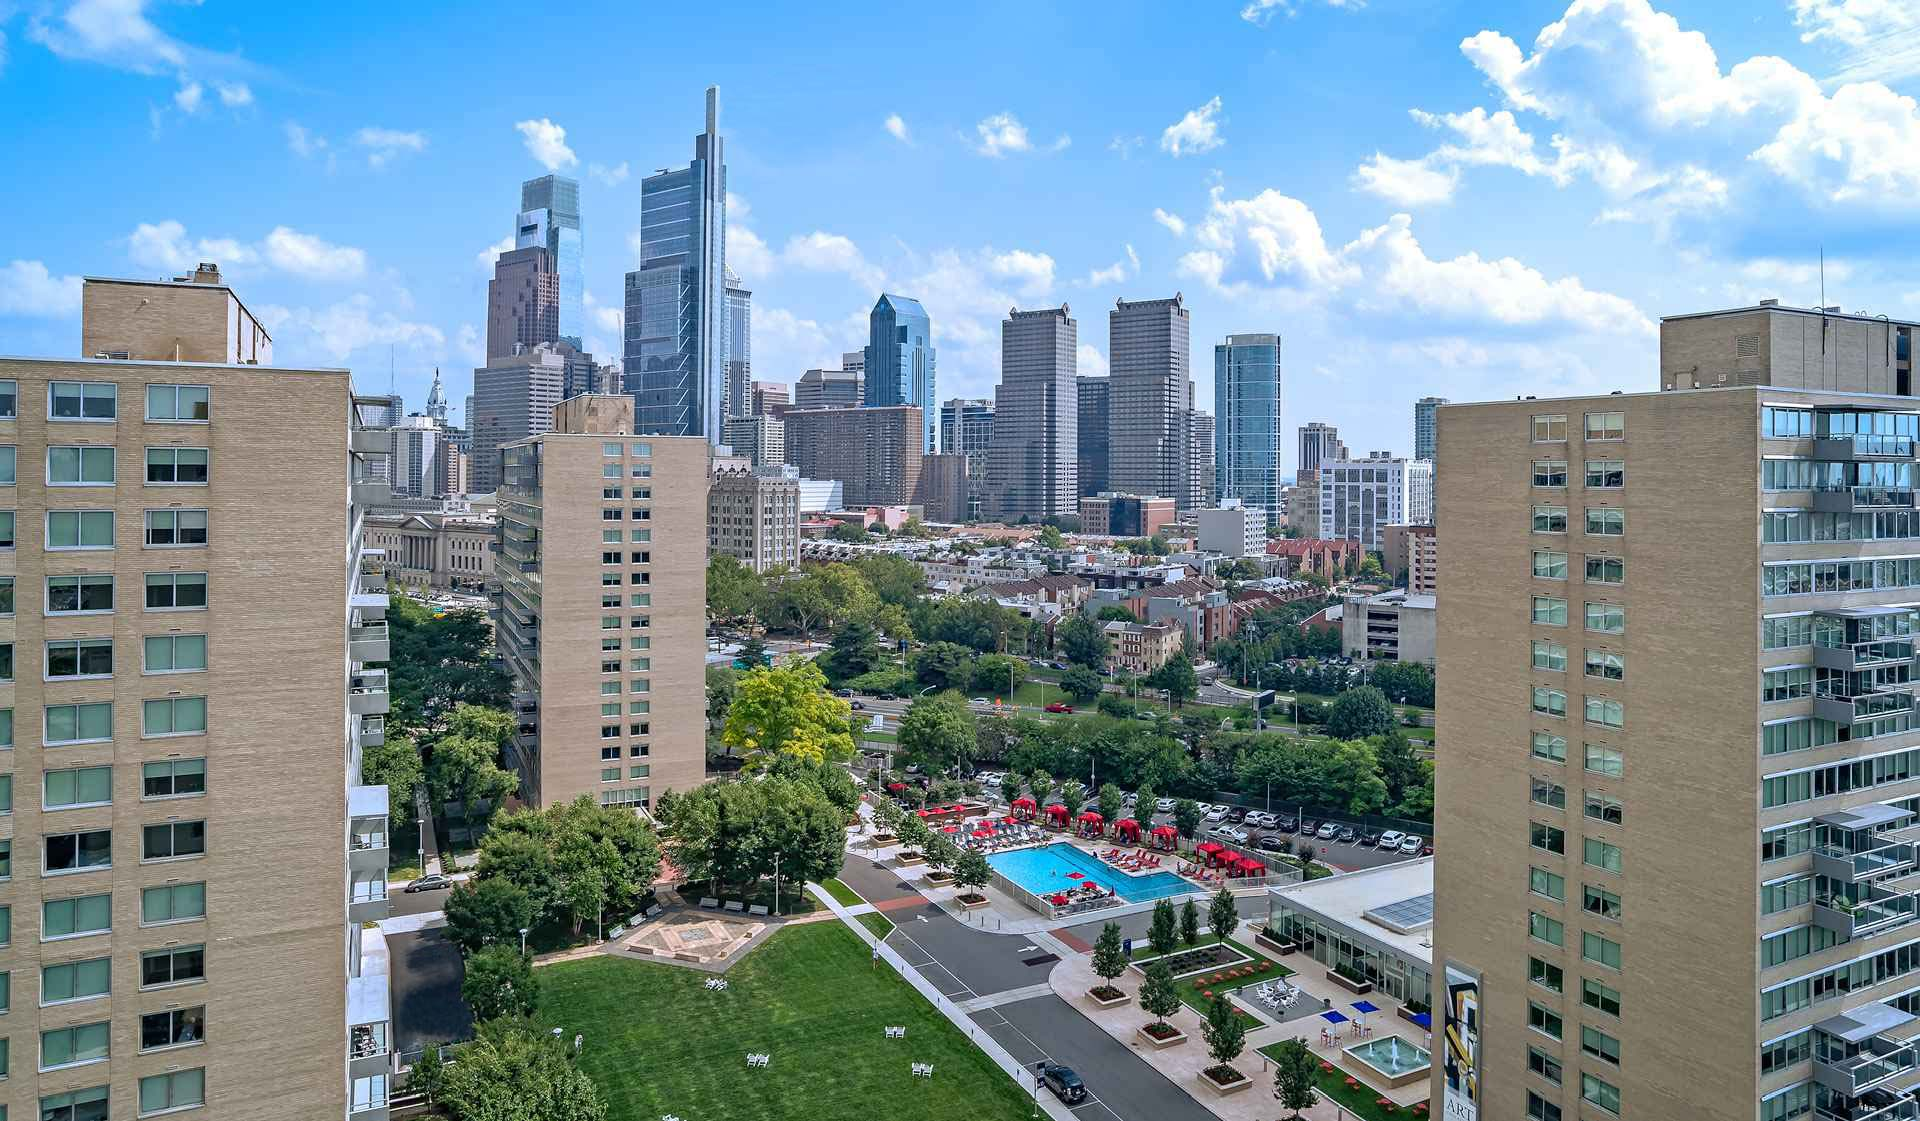 Park Towne Place Premier Apartment Homes - Philadelphia, PA - City View